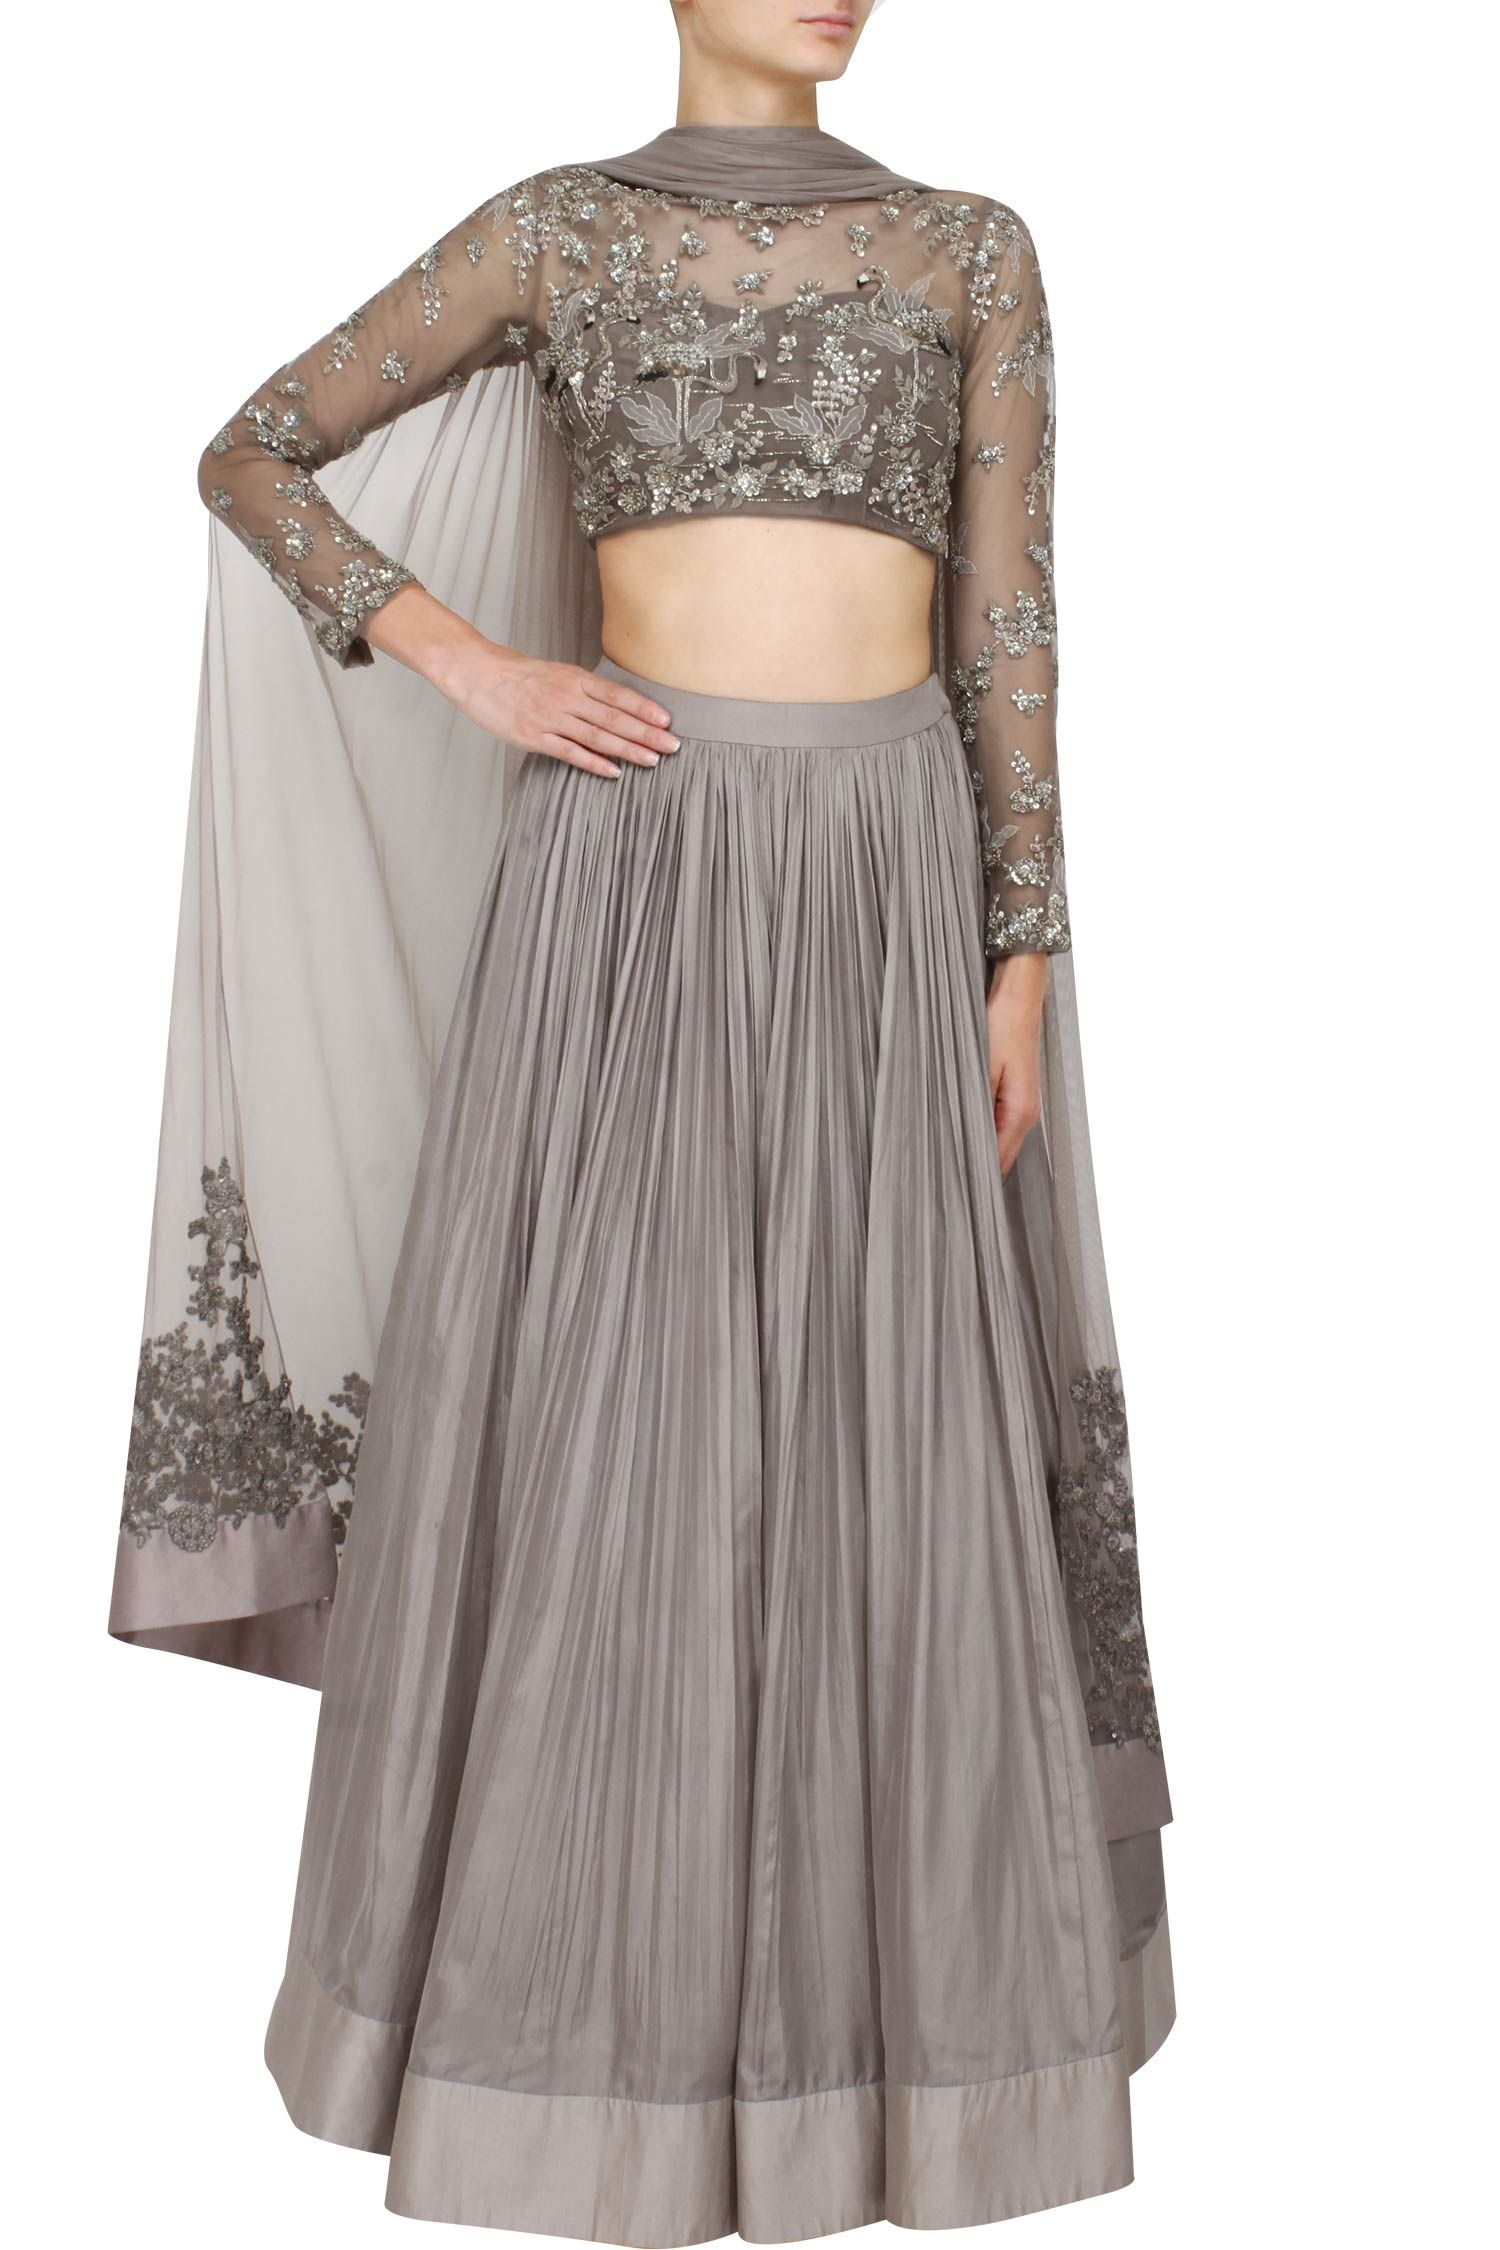 b93599279e426 Grey lehenga set with embellished blouse